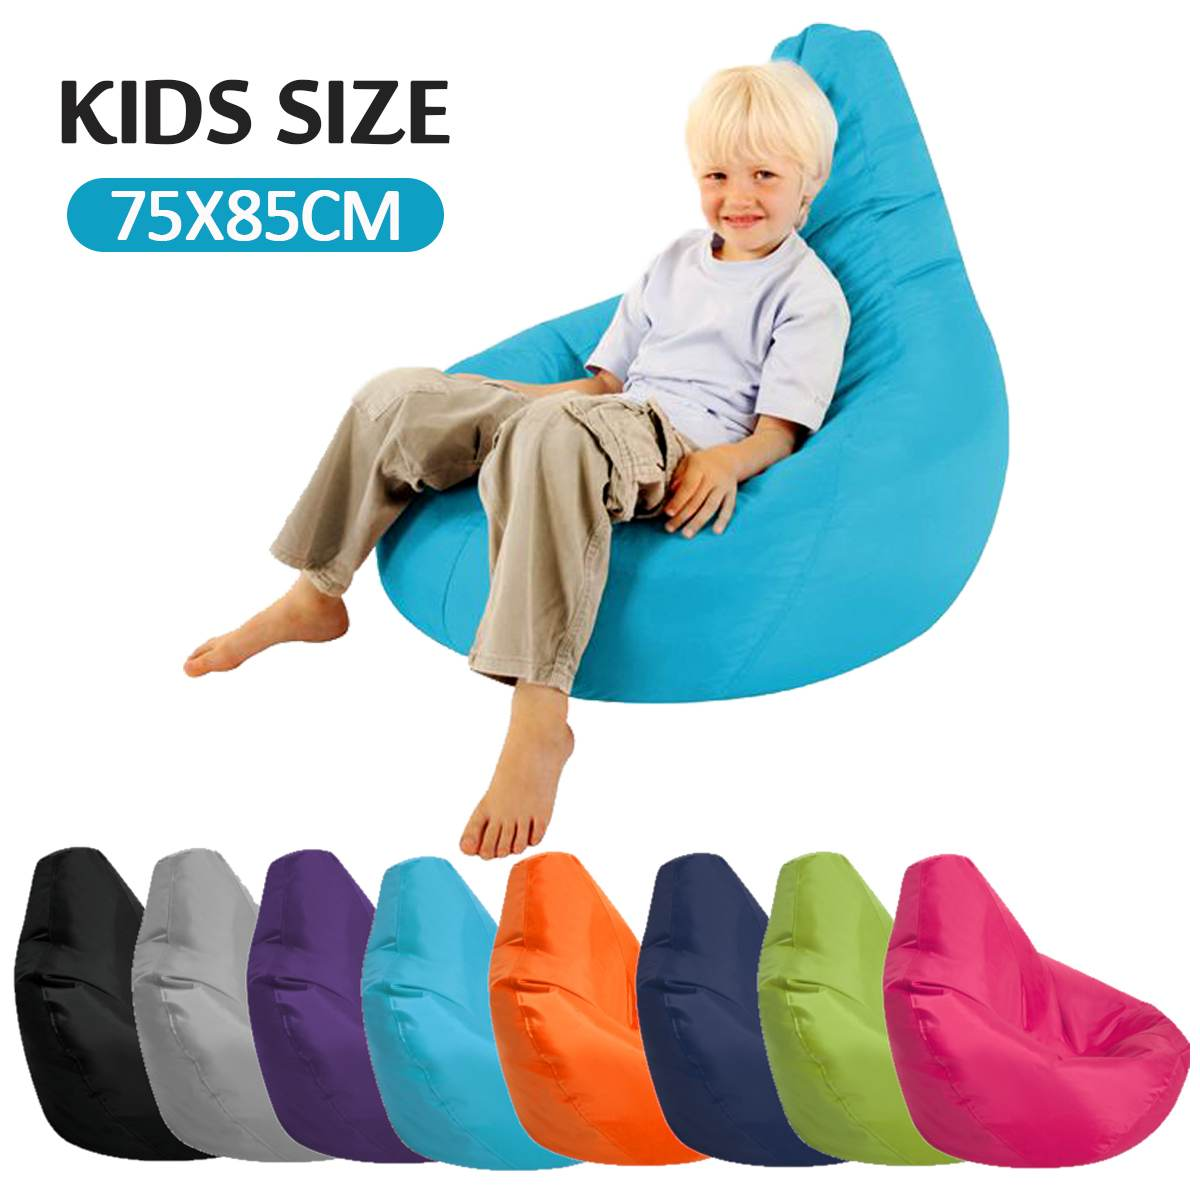 Kids Bean Bag Sofa Chair Cover Lounger Sofa Ottoman Seat Living Room Furniture Without Filler Beanbag Bed Pouf Puff Couch TatamiKids Bean Bag Sofa Chair Cover Lounger Sofa Ottoman Seat Living Room Furniture Without Filler Beanbag Bed Pouf Puff Couch Tatami